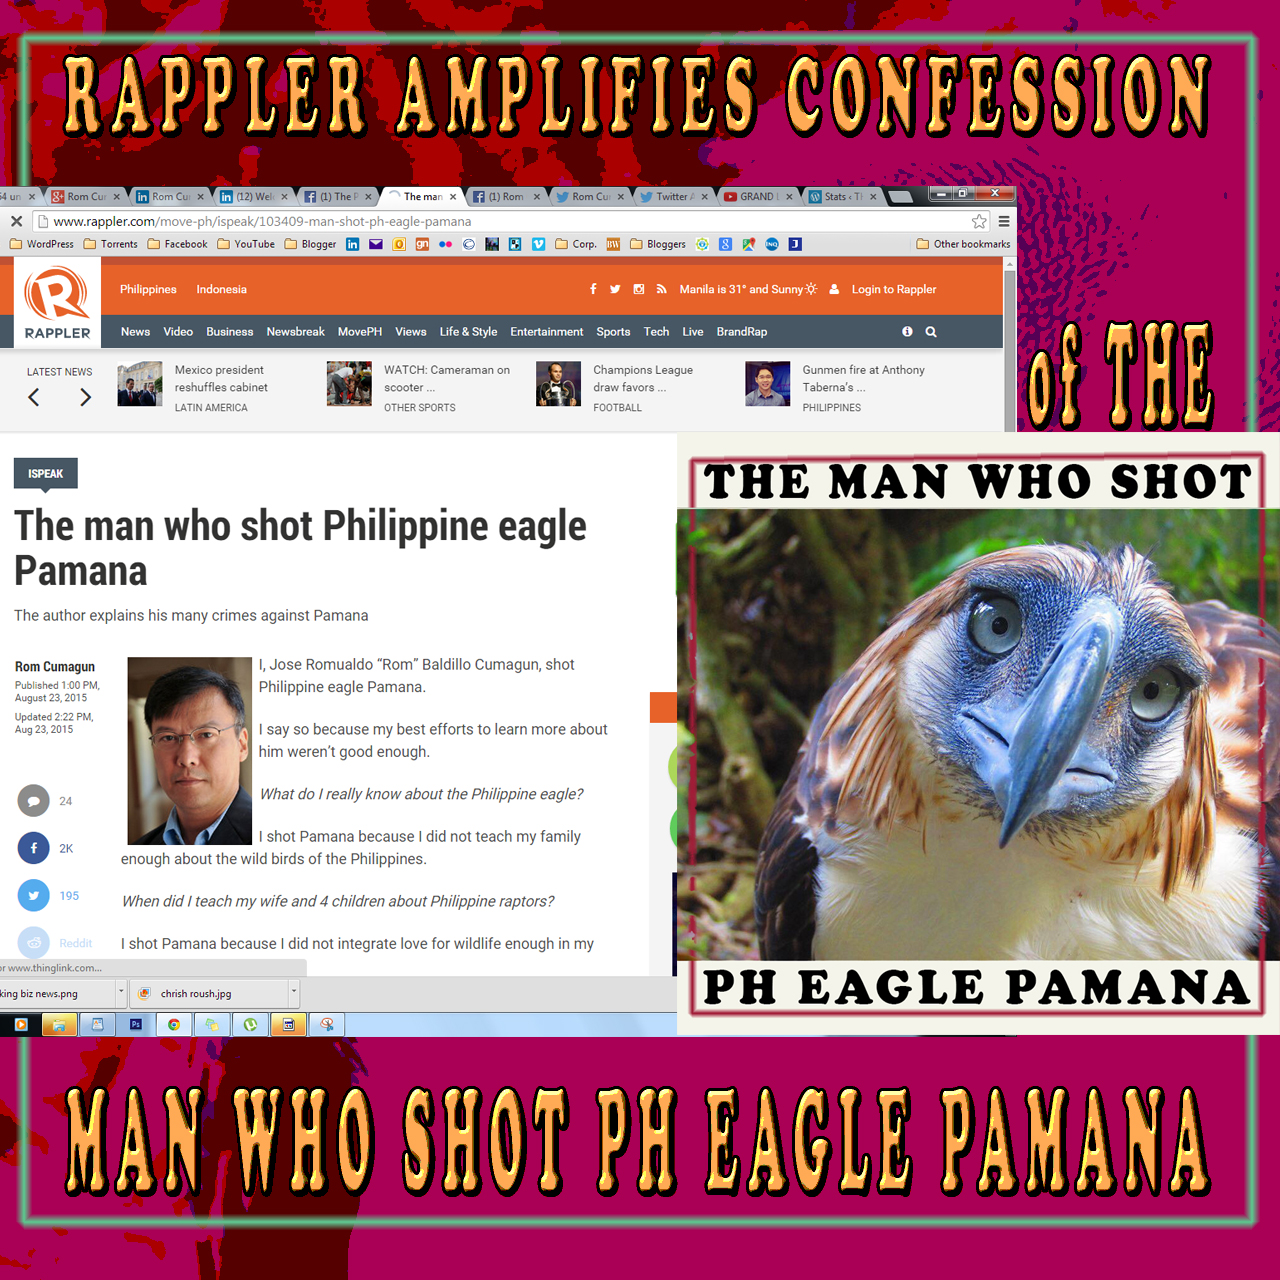 THE MAN WHO SHOT PHILIPPINE EAGLE PAMANA